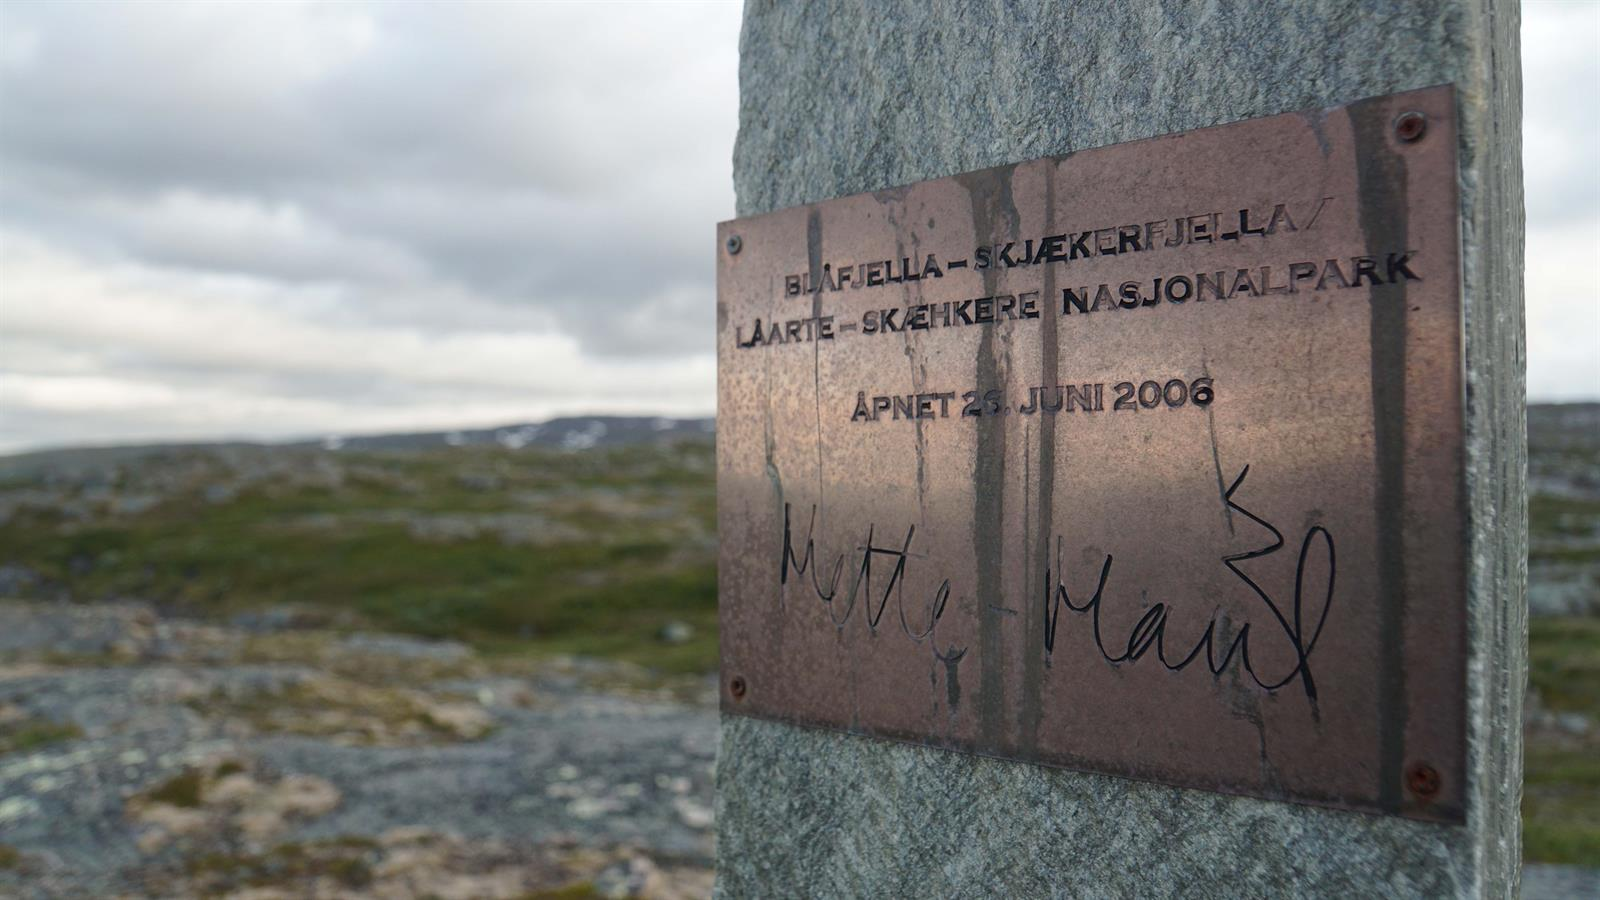 Hiking: National Park Monument Stone, Blåfjella-Skjækerfjella National Park